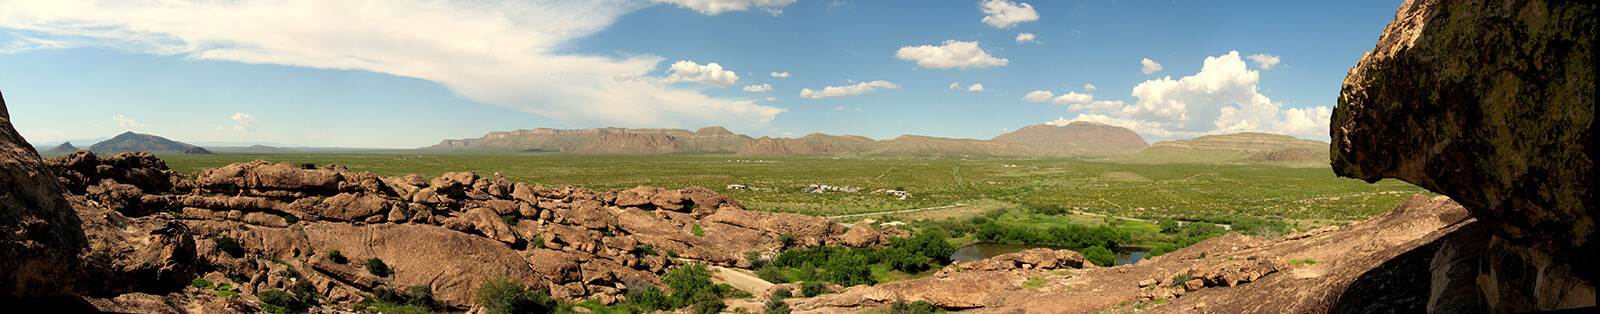 Panoramic view from North Mountain at Hueco Tanks State Park